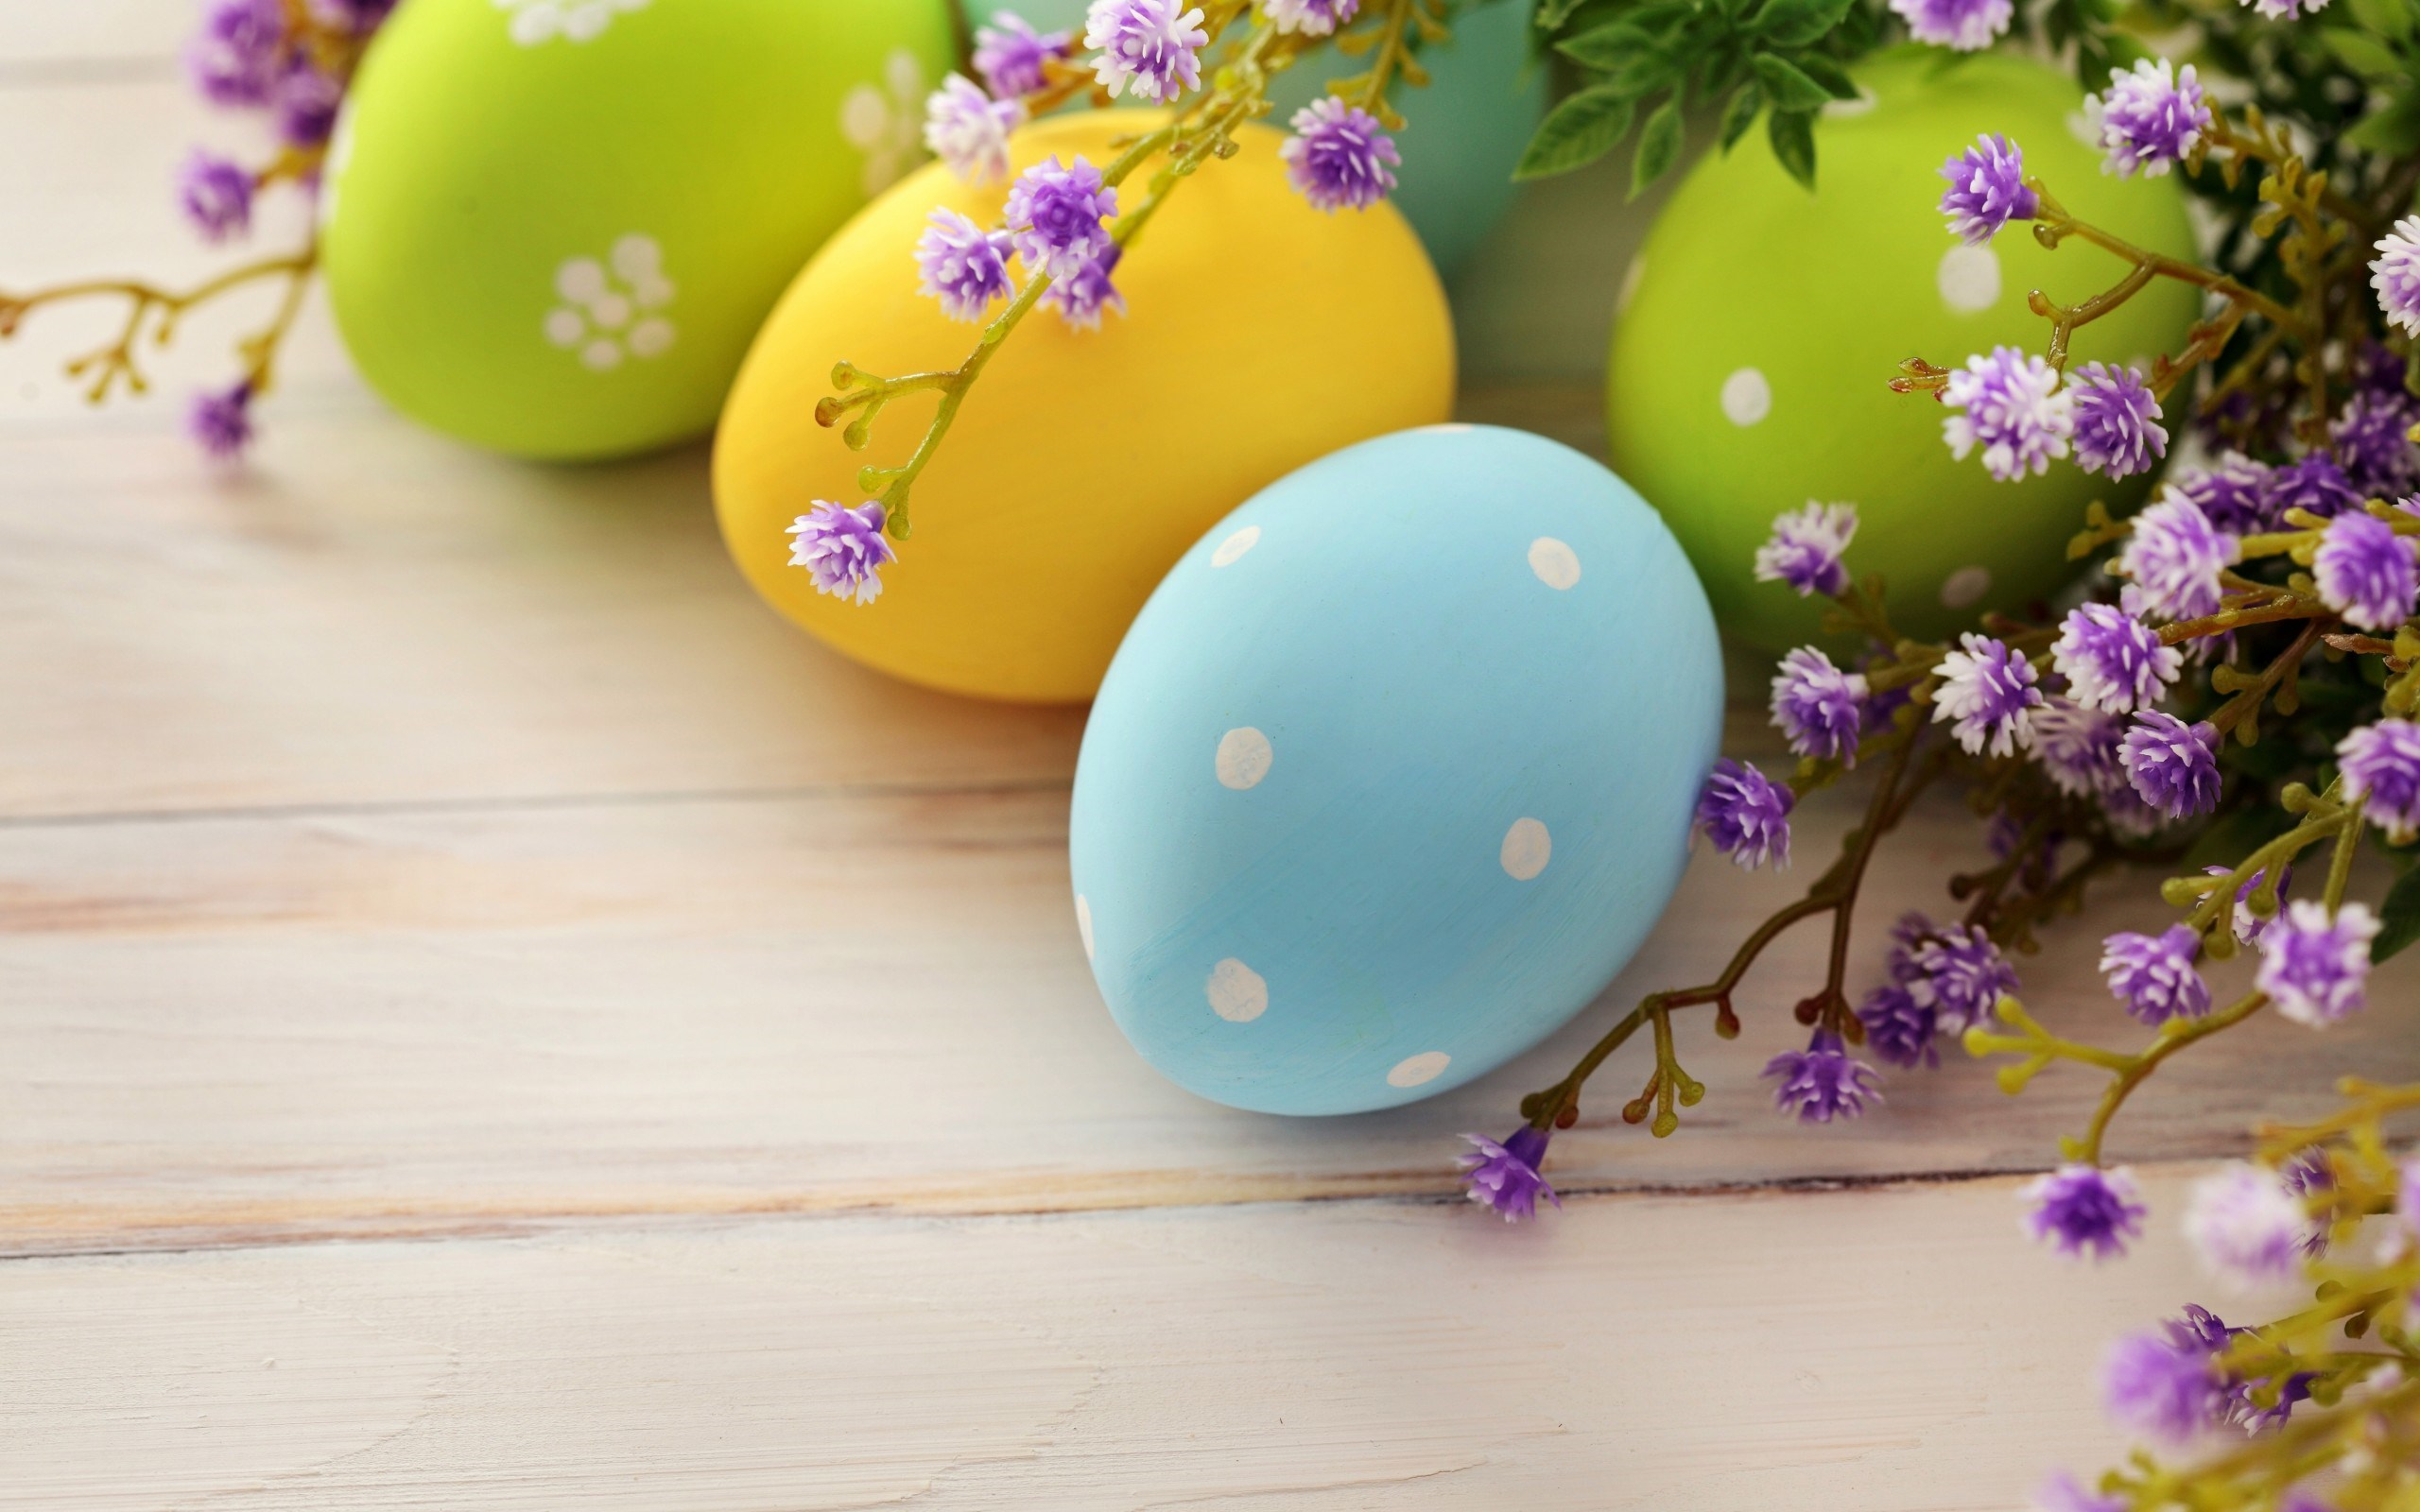 1000 Images About Easter Wallpaper On Pinterest: Wallpaper, High Definition, High Quality